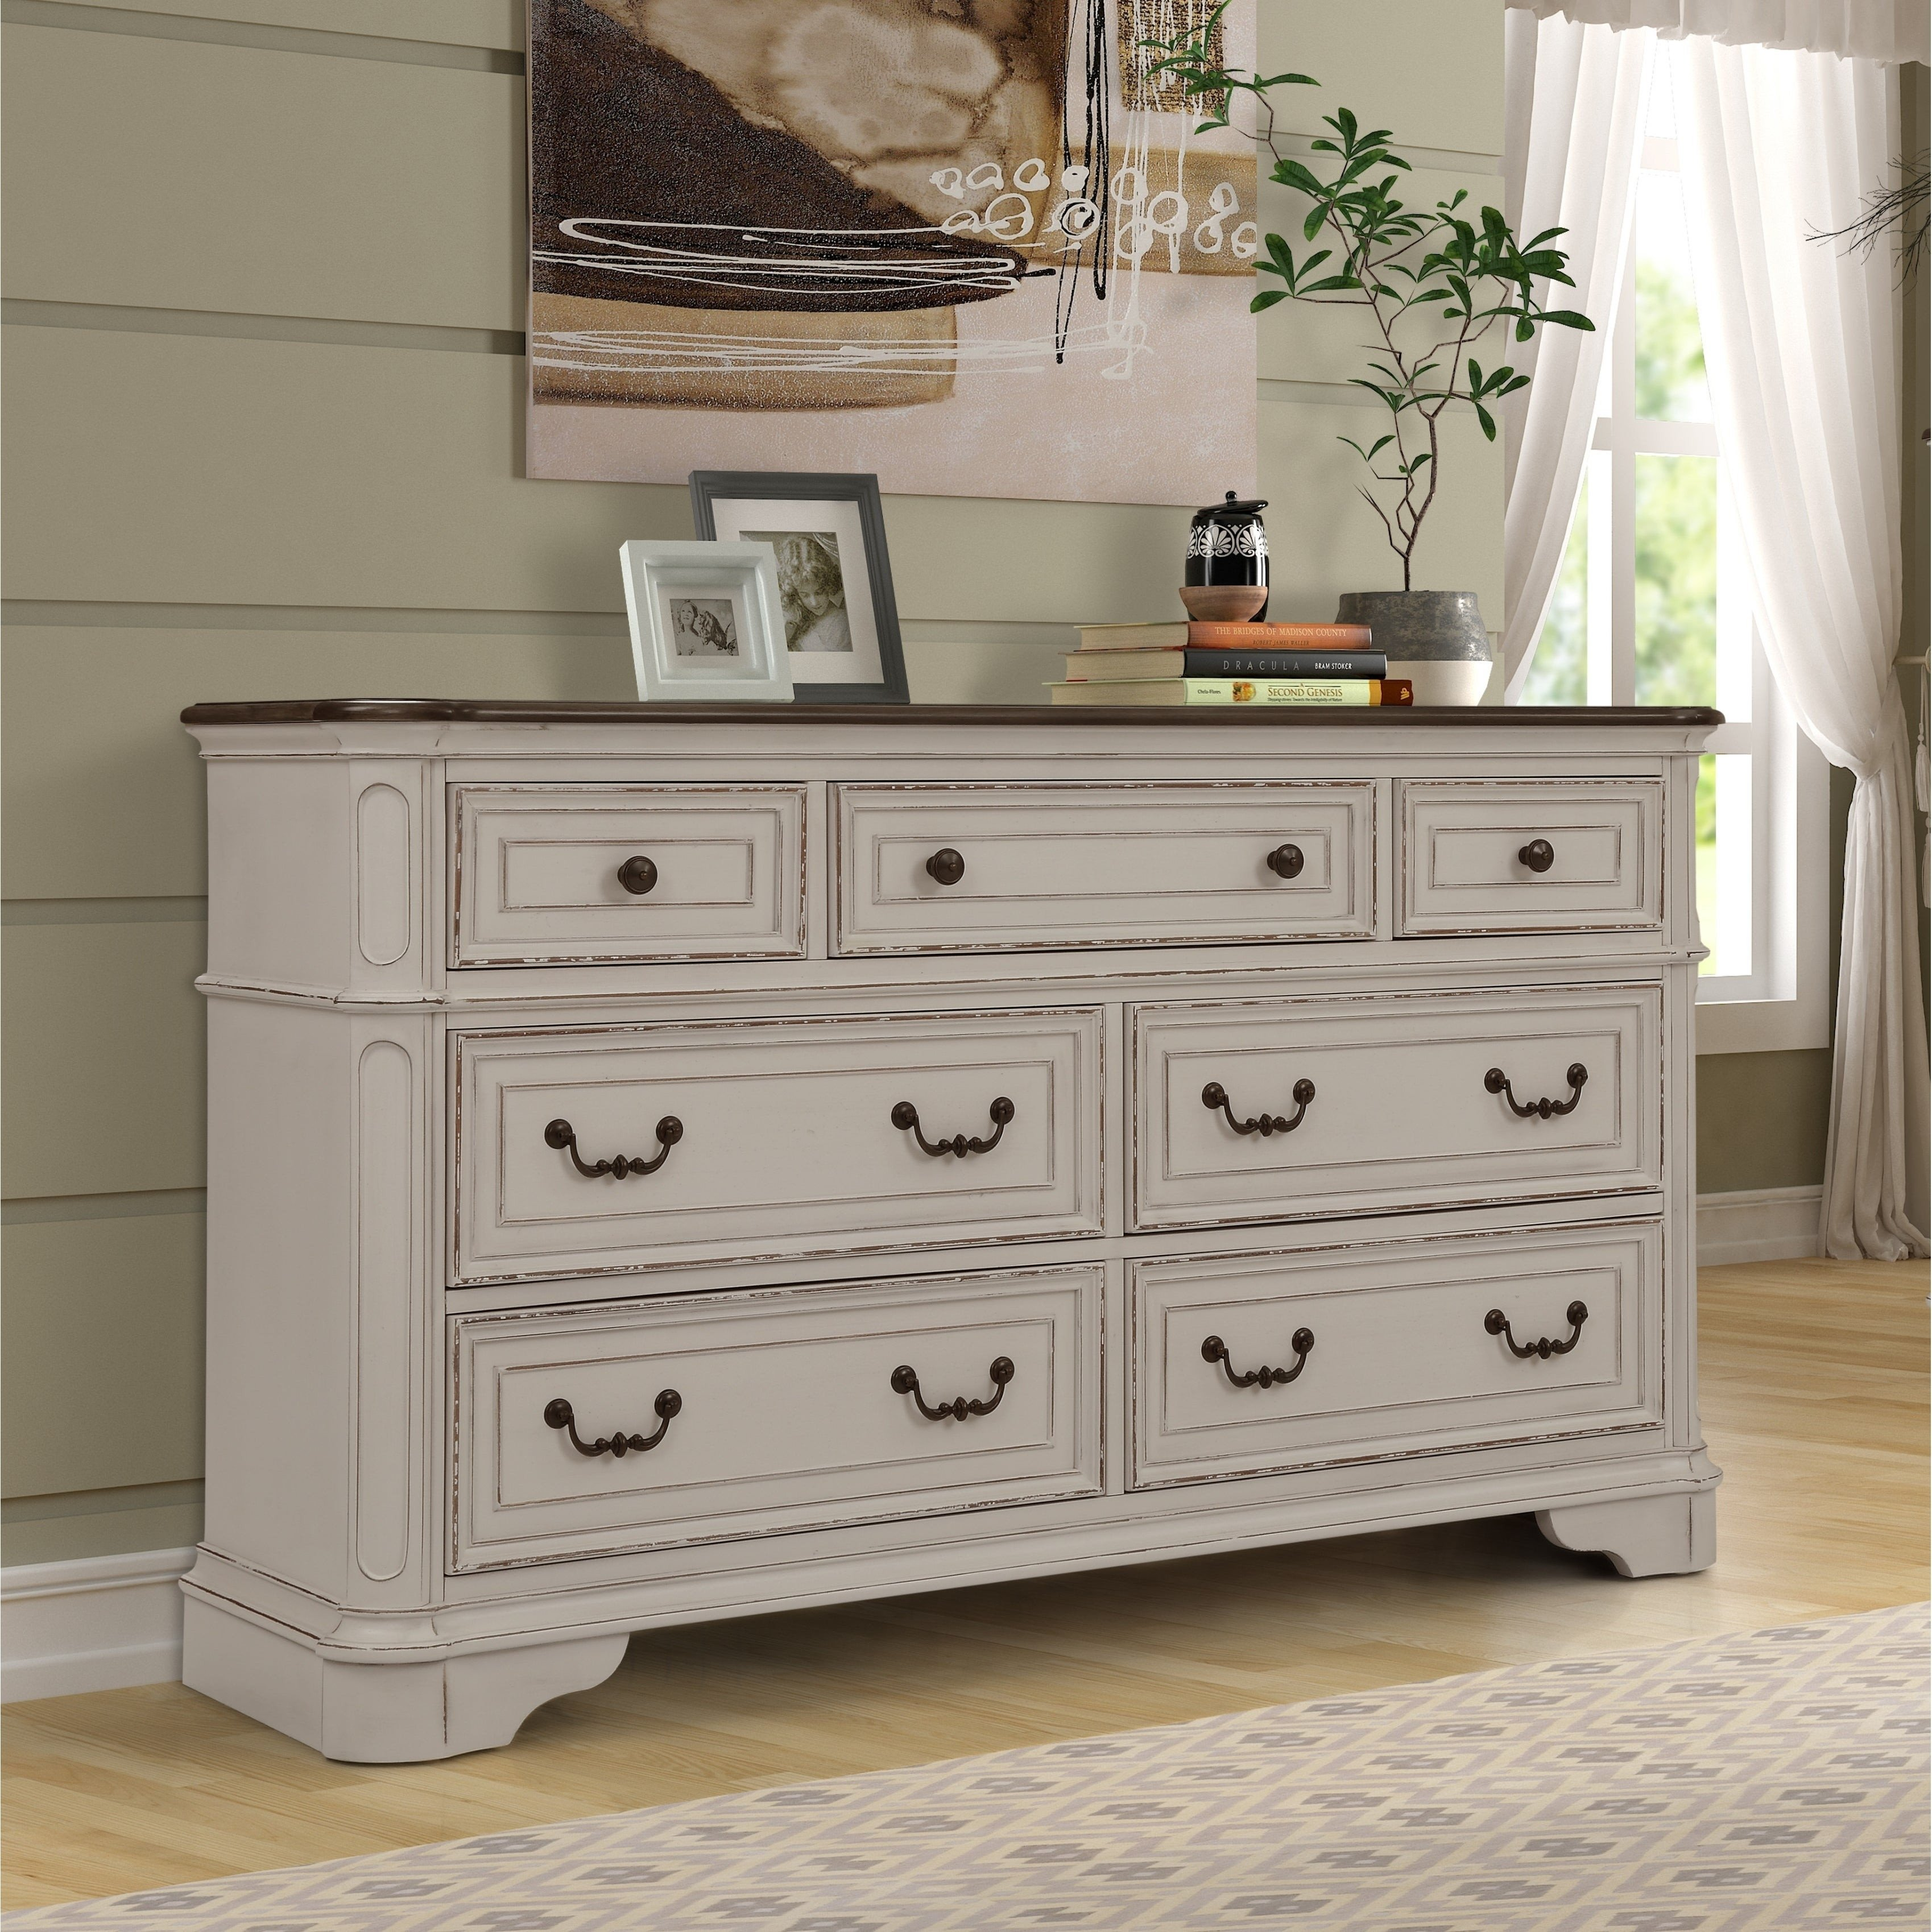 Distressed White Bedroom Furniture Luxury the Gray Barn Ariana Hills Antique White and Oak Wood Dresser